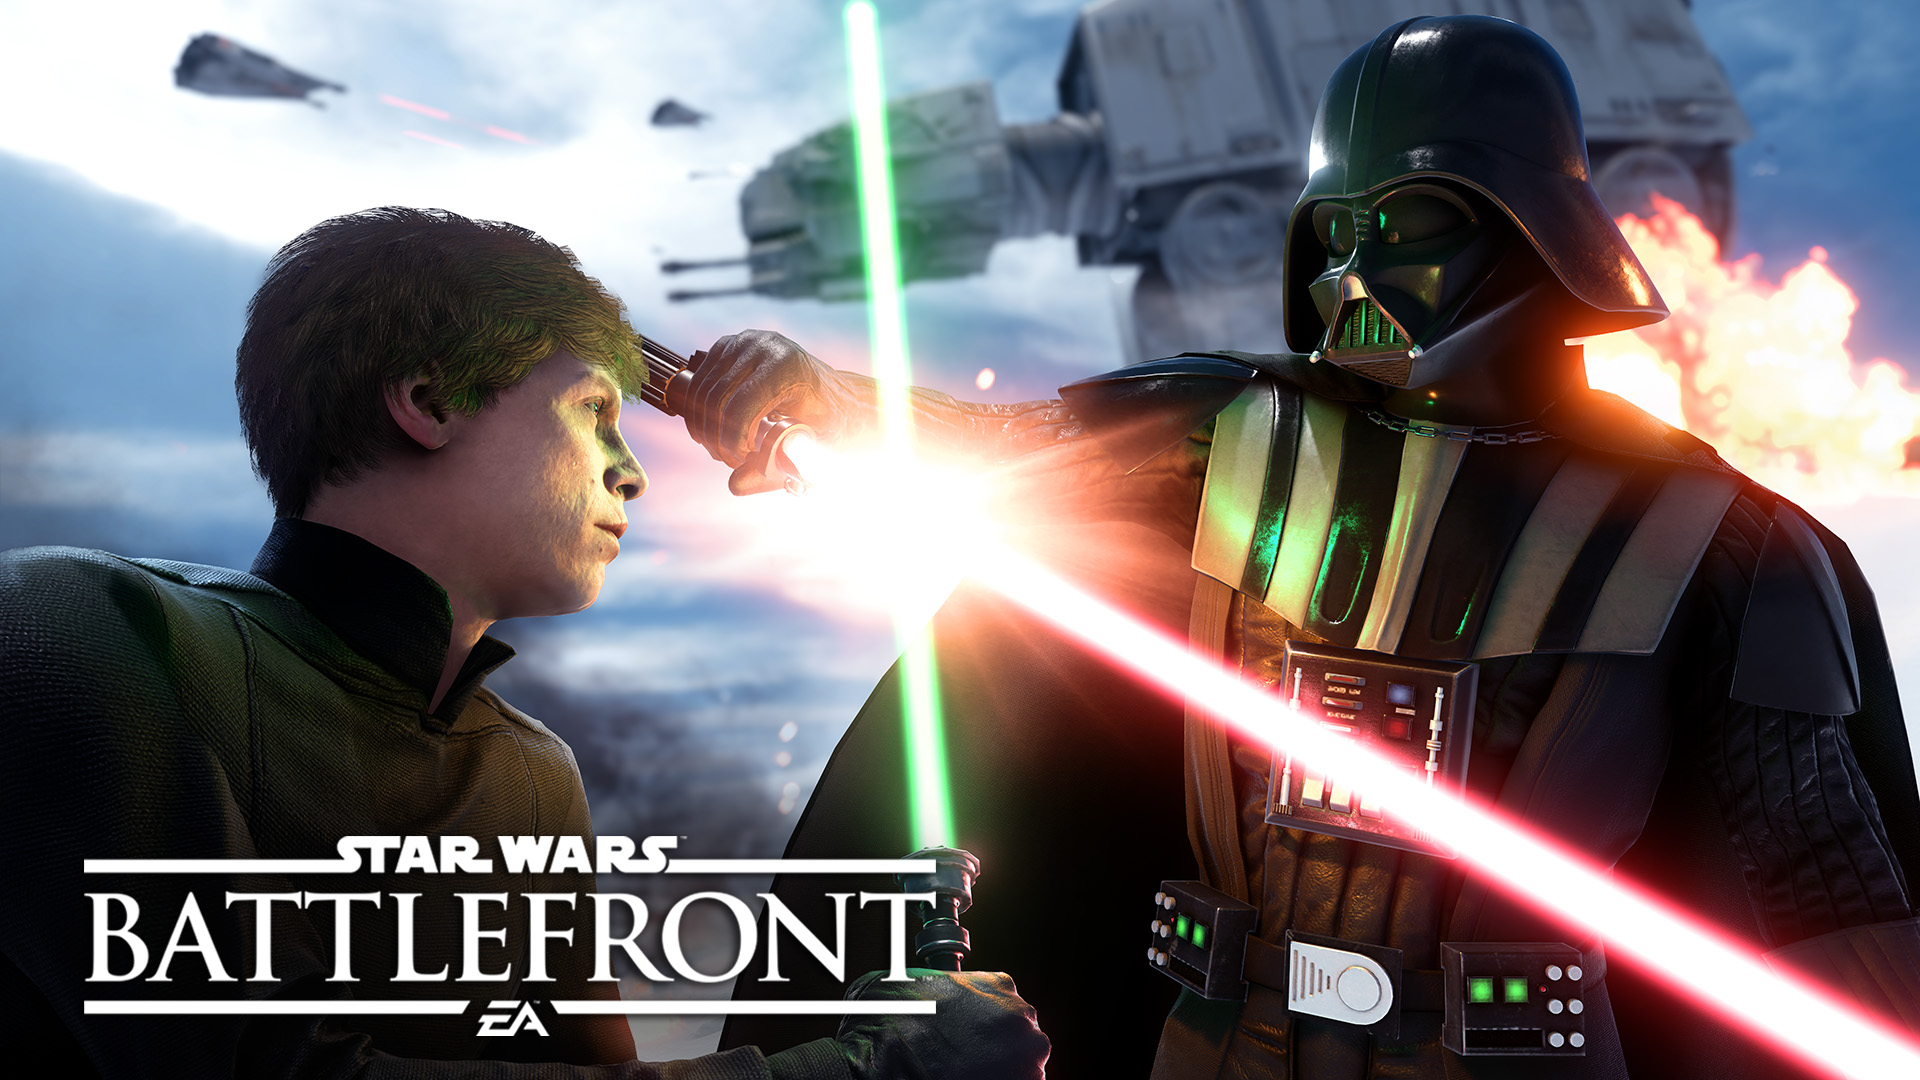 Star Wars Battlefront luke vs vader